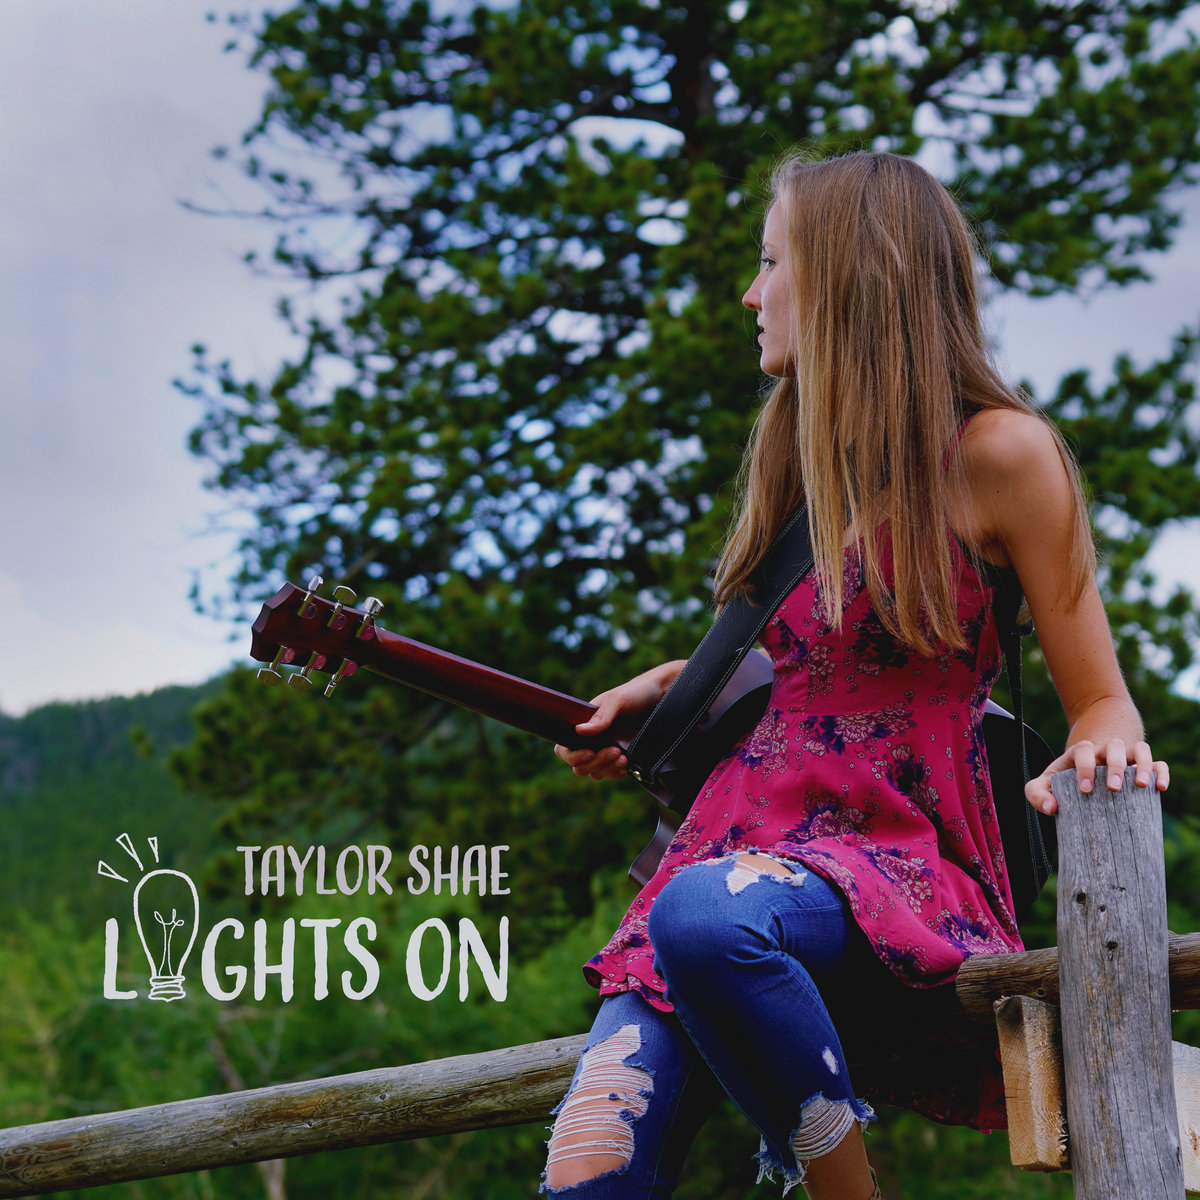 Lights On by Taylor Shae